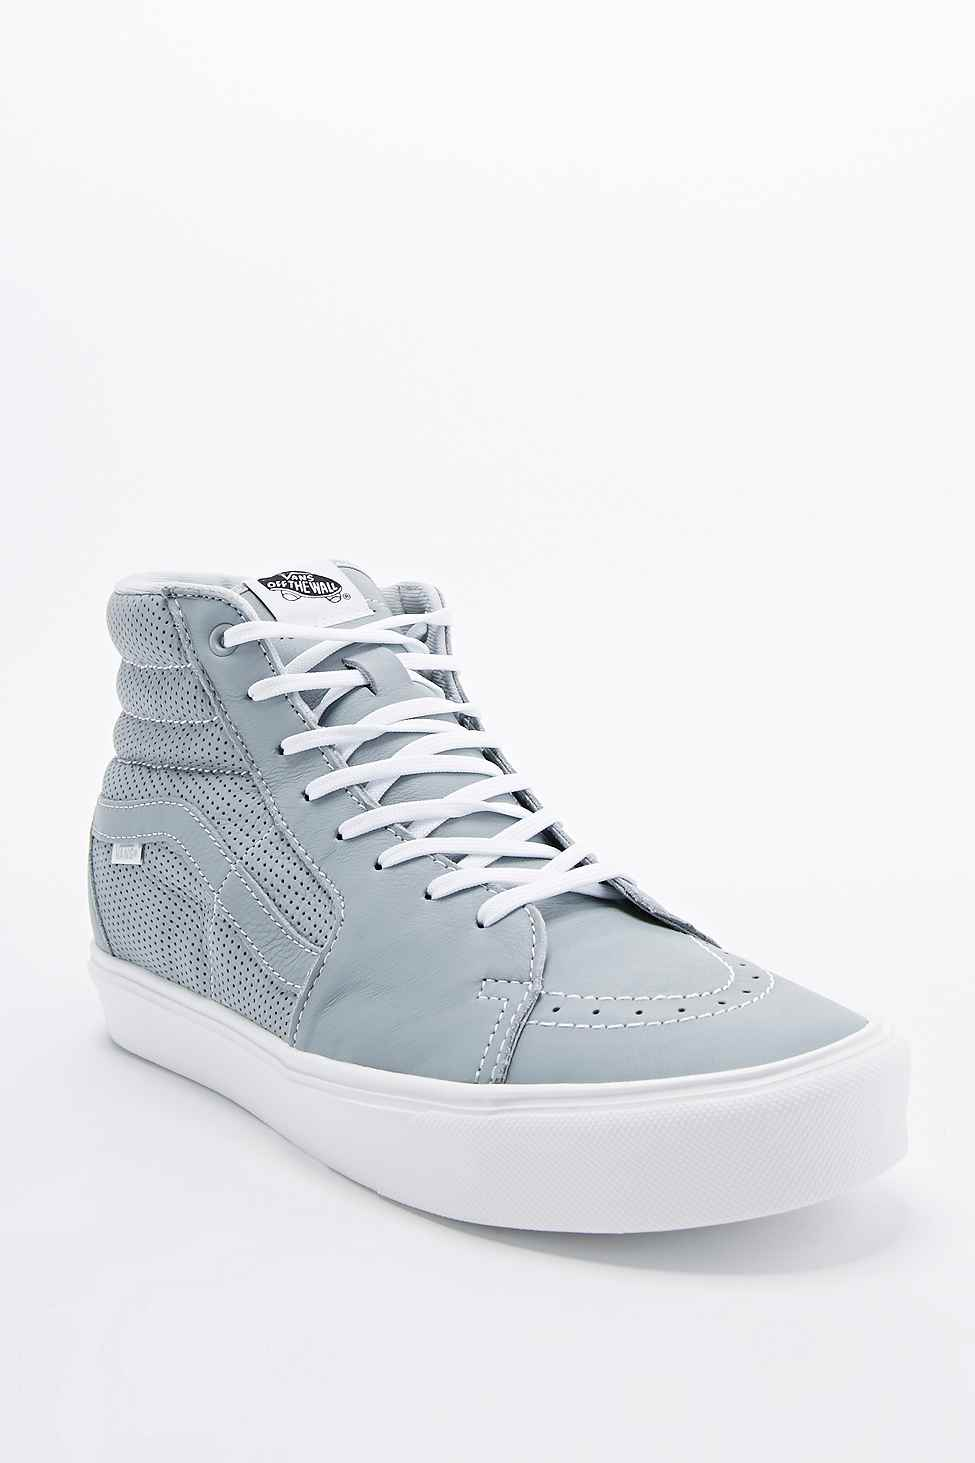 343add4615 Vans Sk8-Hi Lite Trainers In Perforated Grey in Gray for Men - Lyst